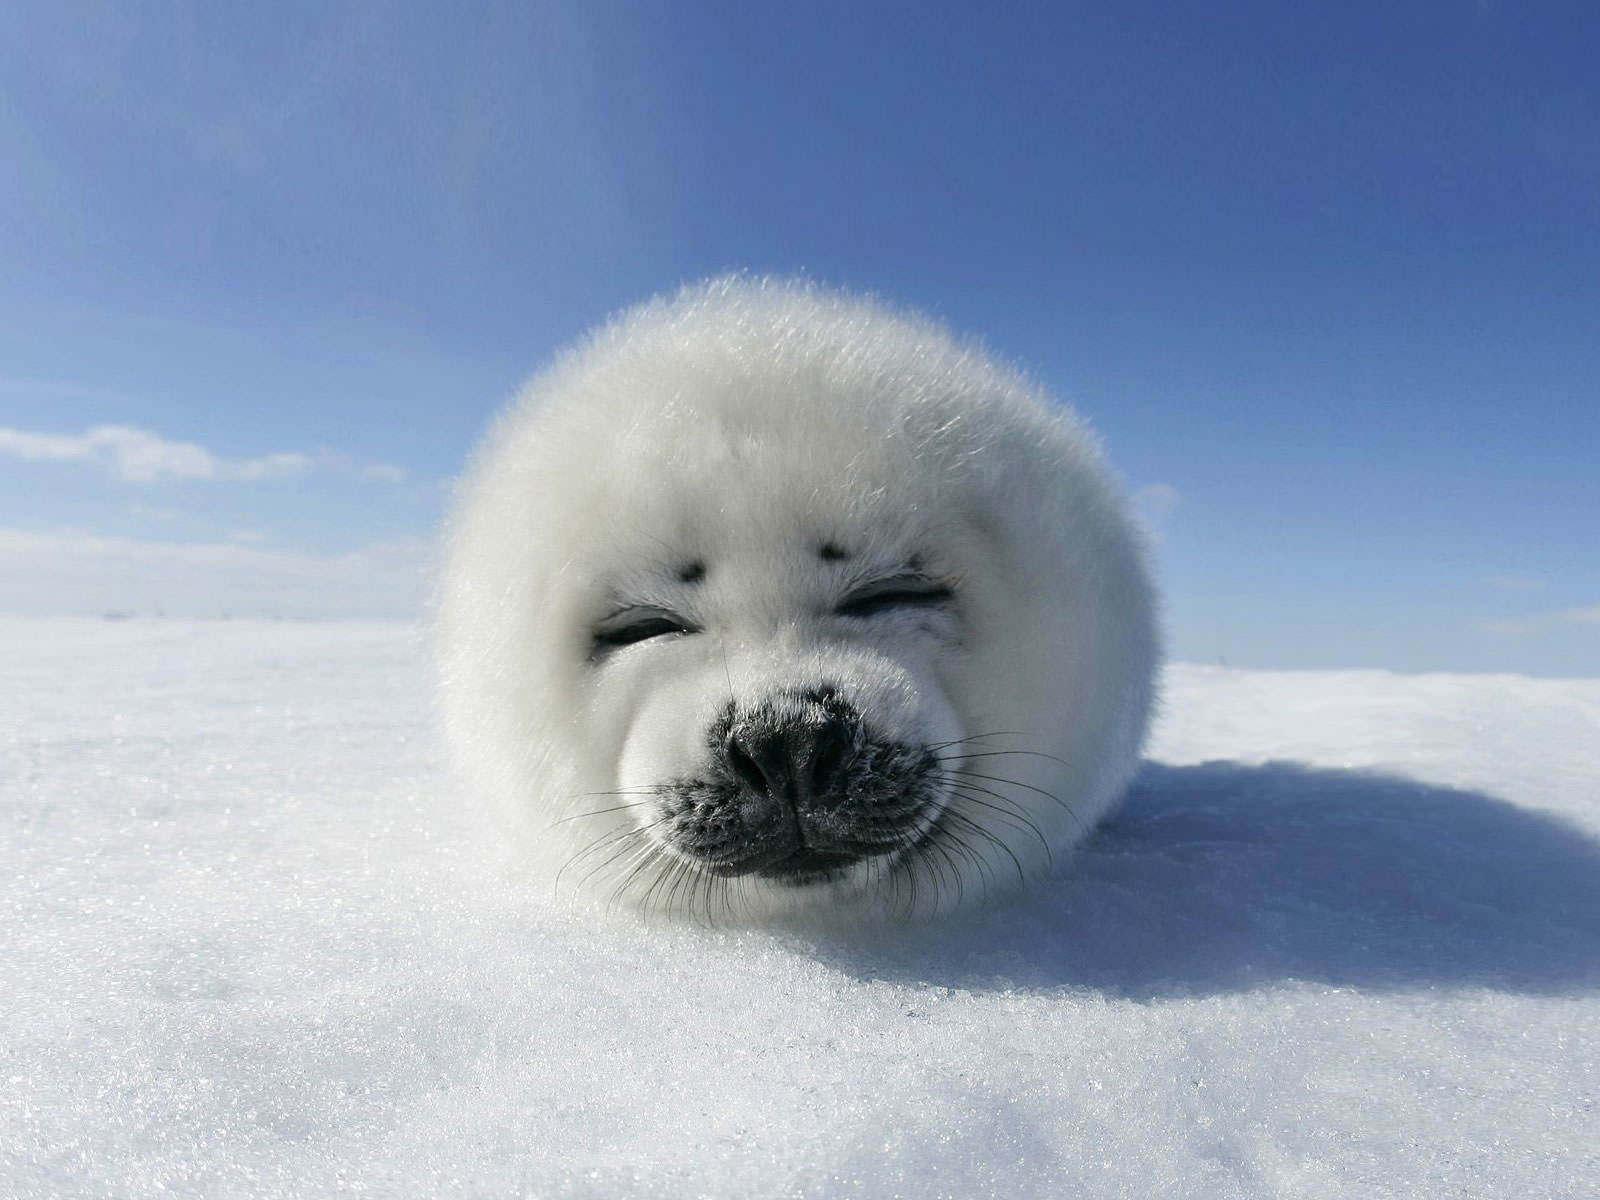 Baby Seal Wallpaper 1600x1200.